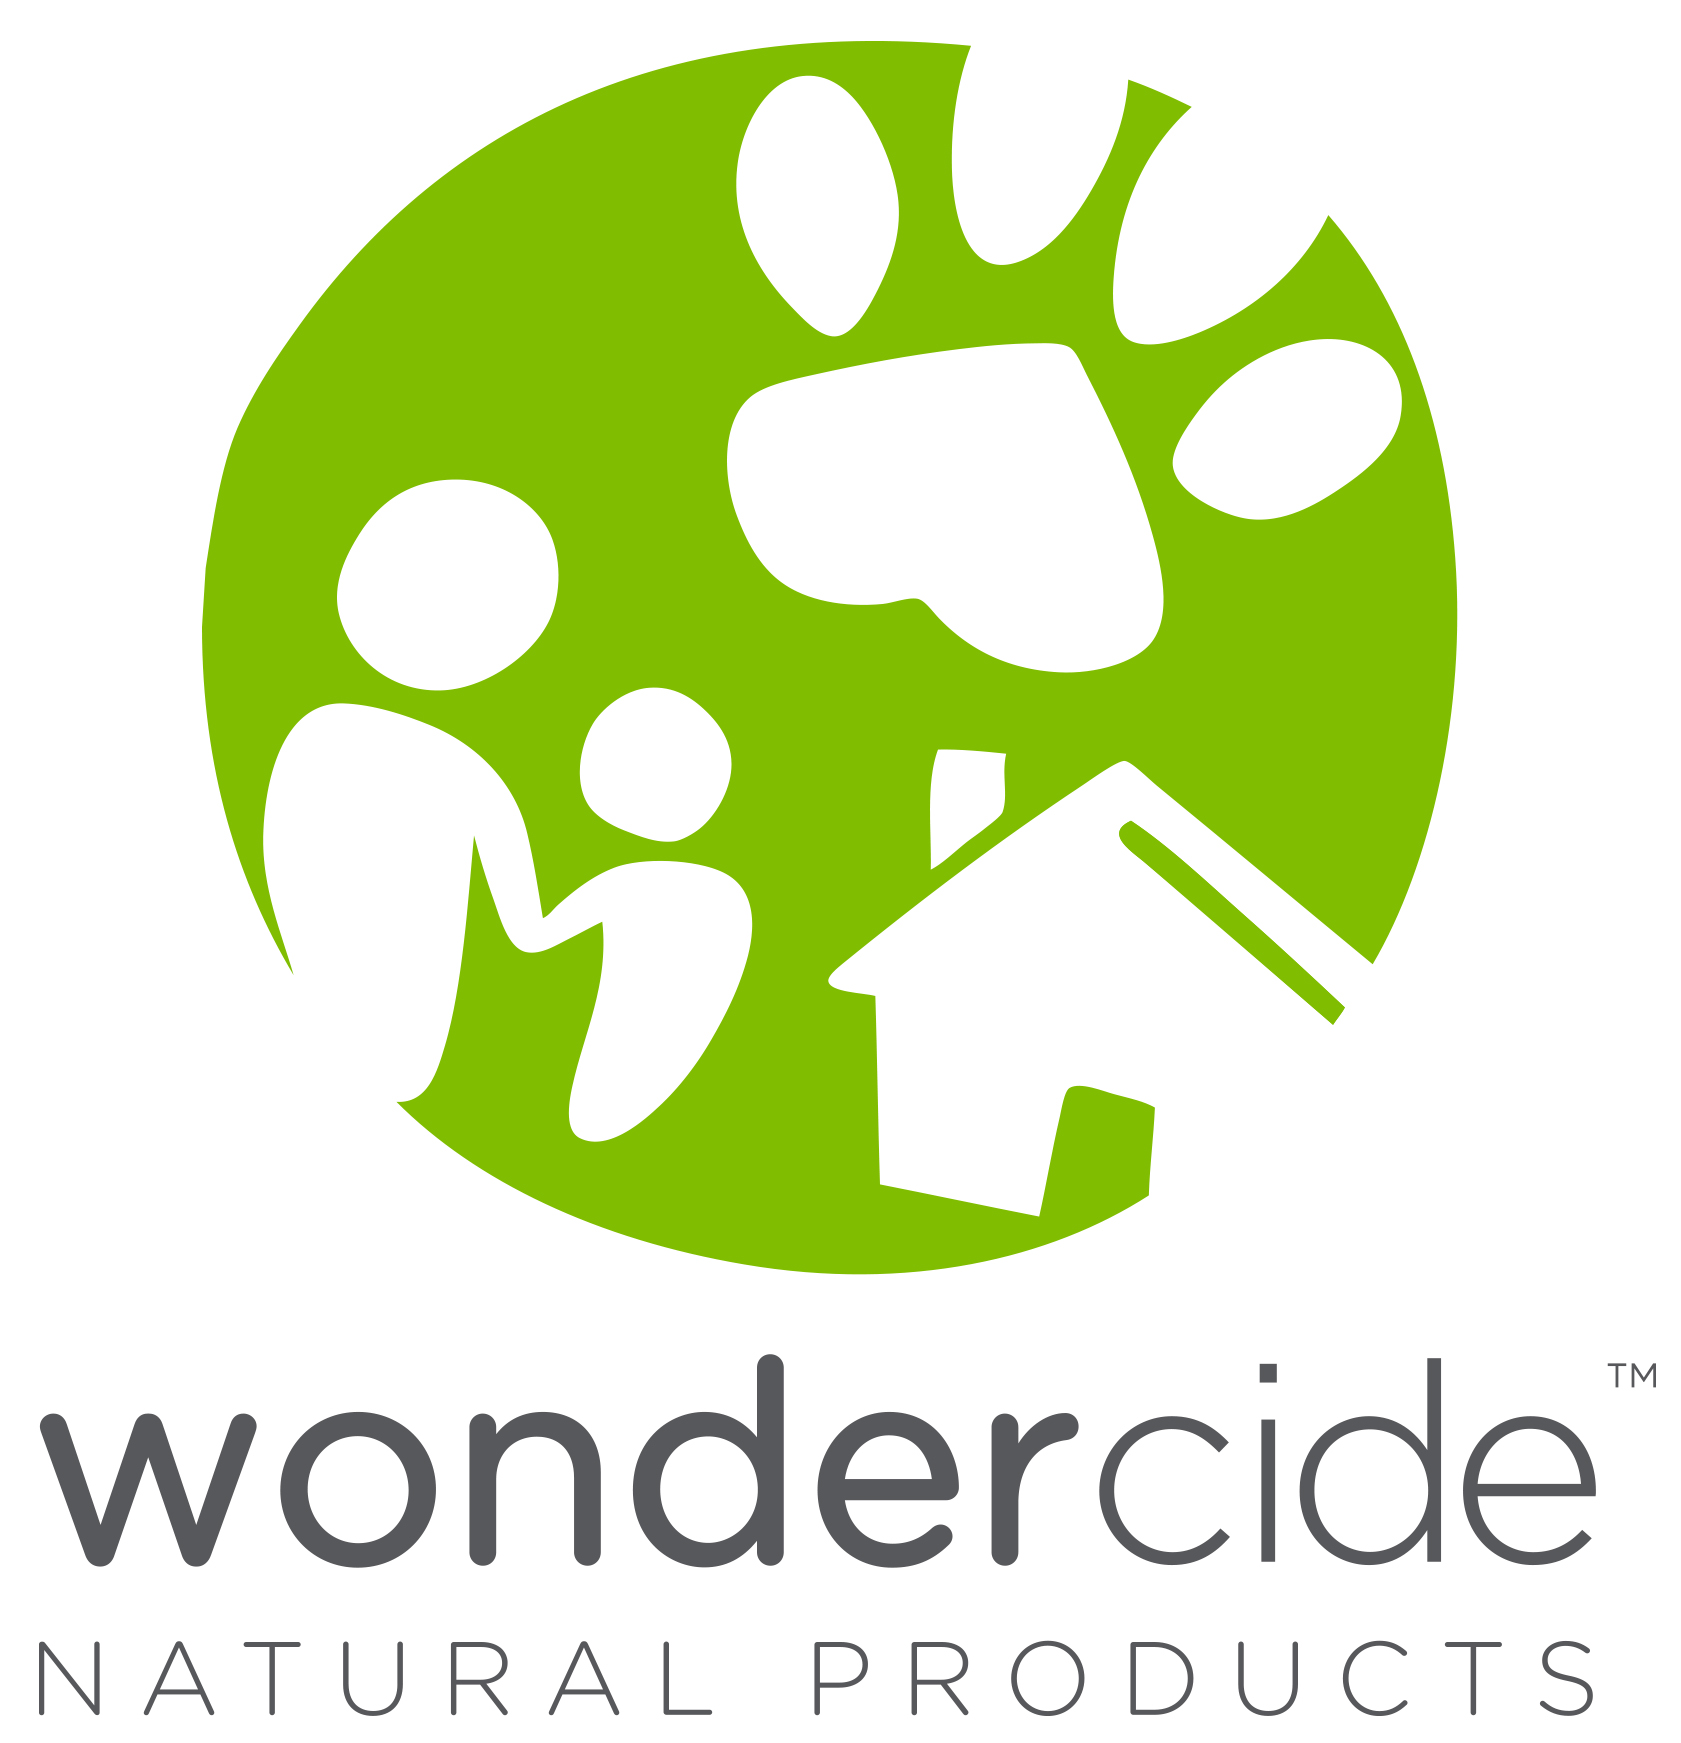 wondercide-logo-vertical-green